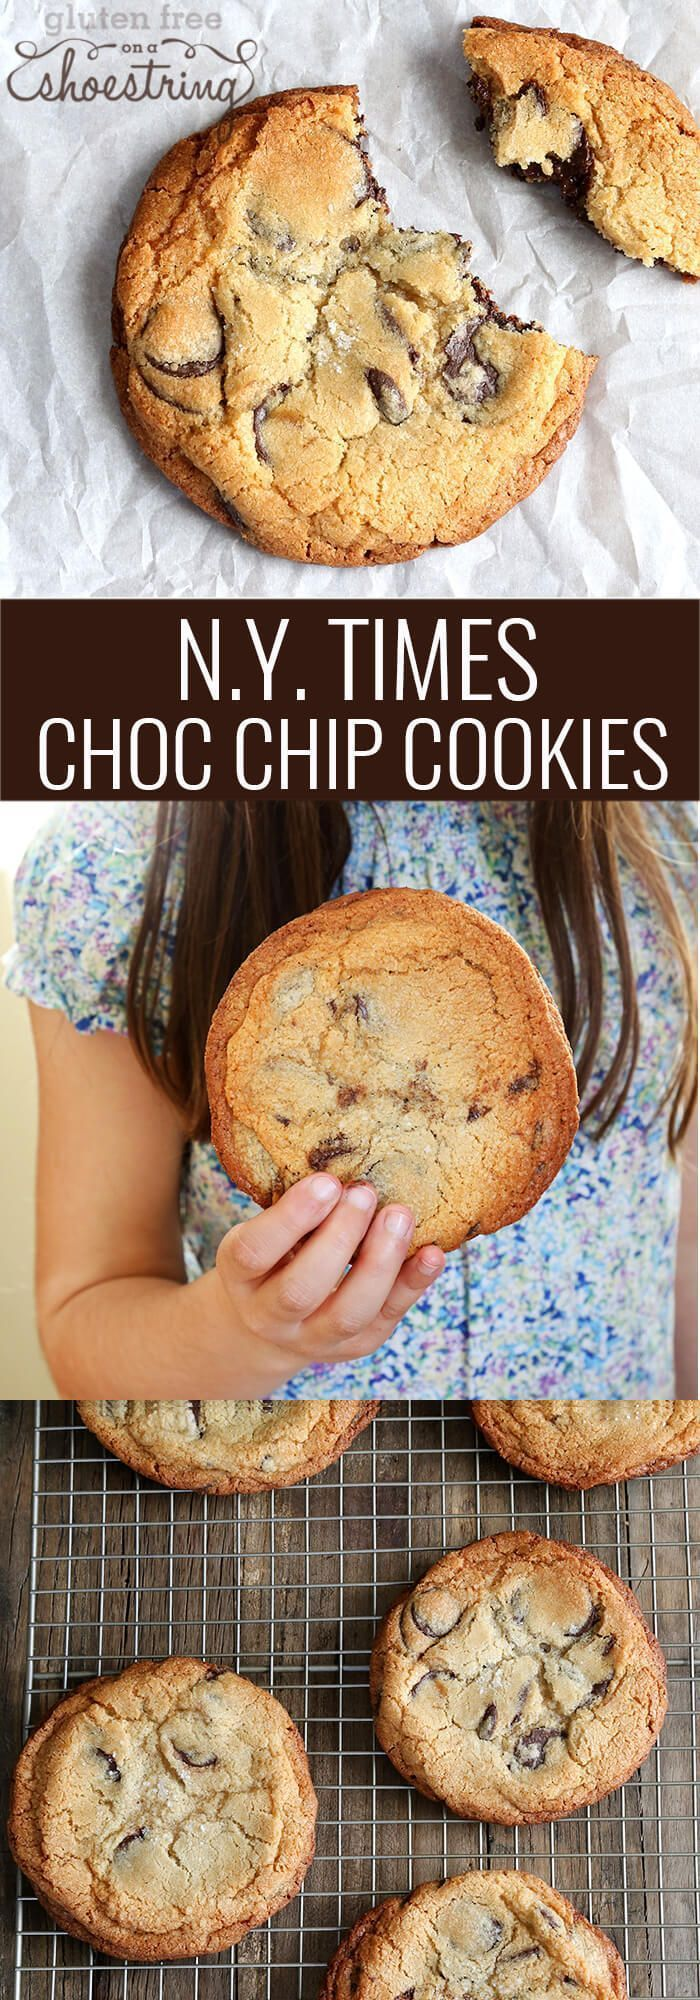 These gluten free New York Times Chocolate Chip Cookies taste exactly like the famous crispy-outside-chewy-inside cookies published (in gluten-containing form, of course) by the New York Times in 2009.